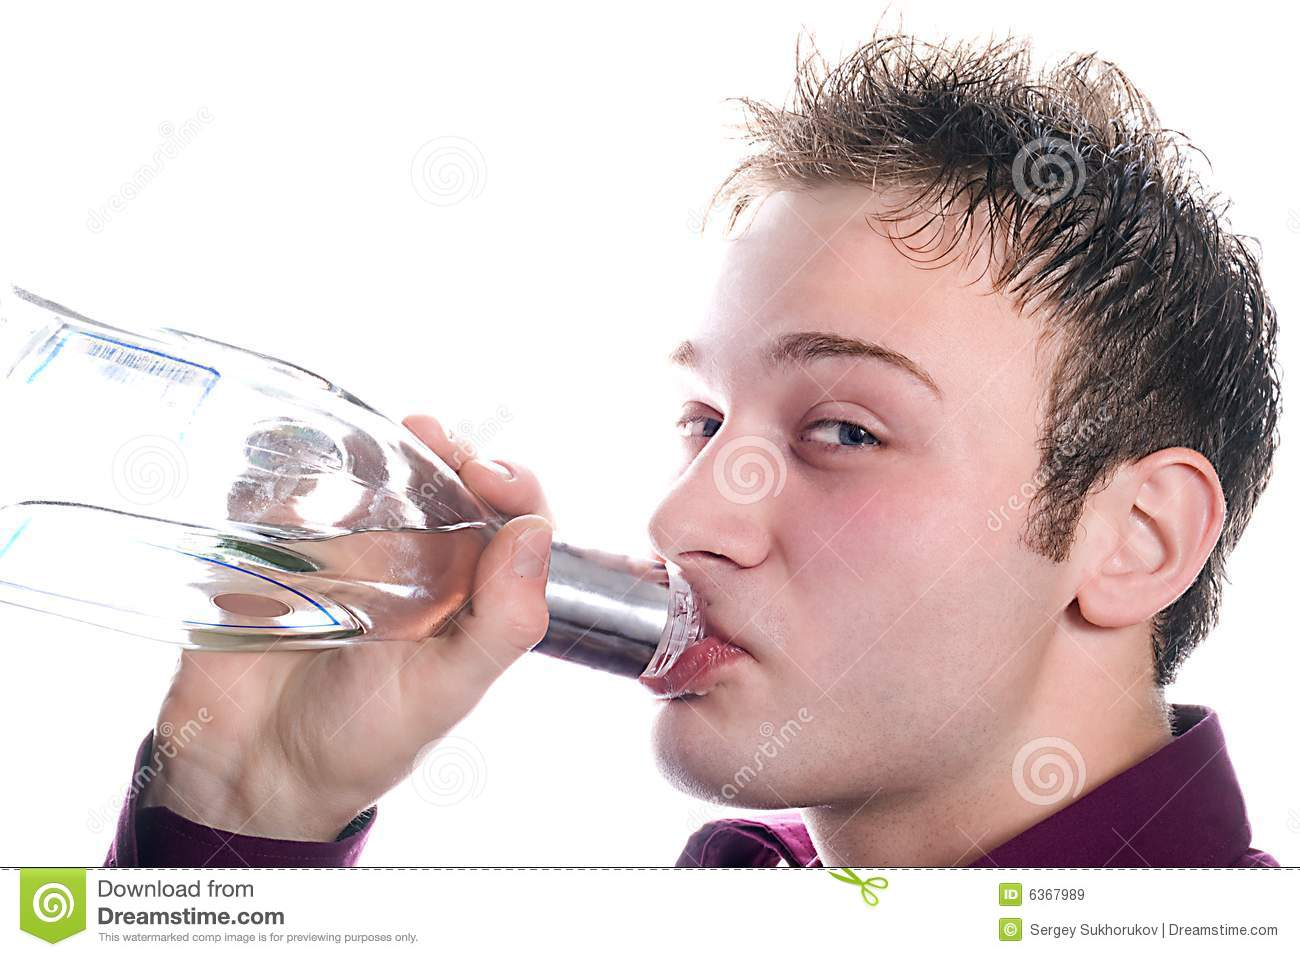 The young man drinks vodka from a bottle